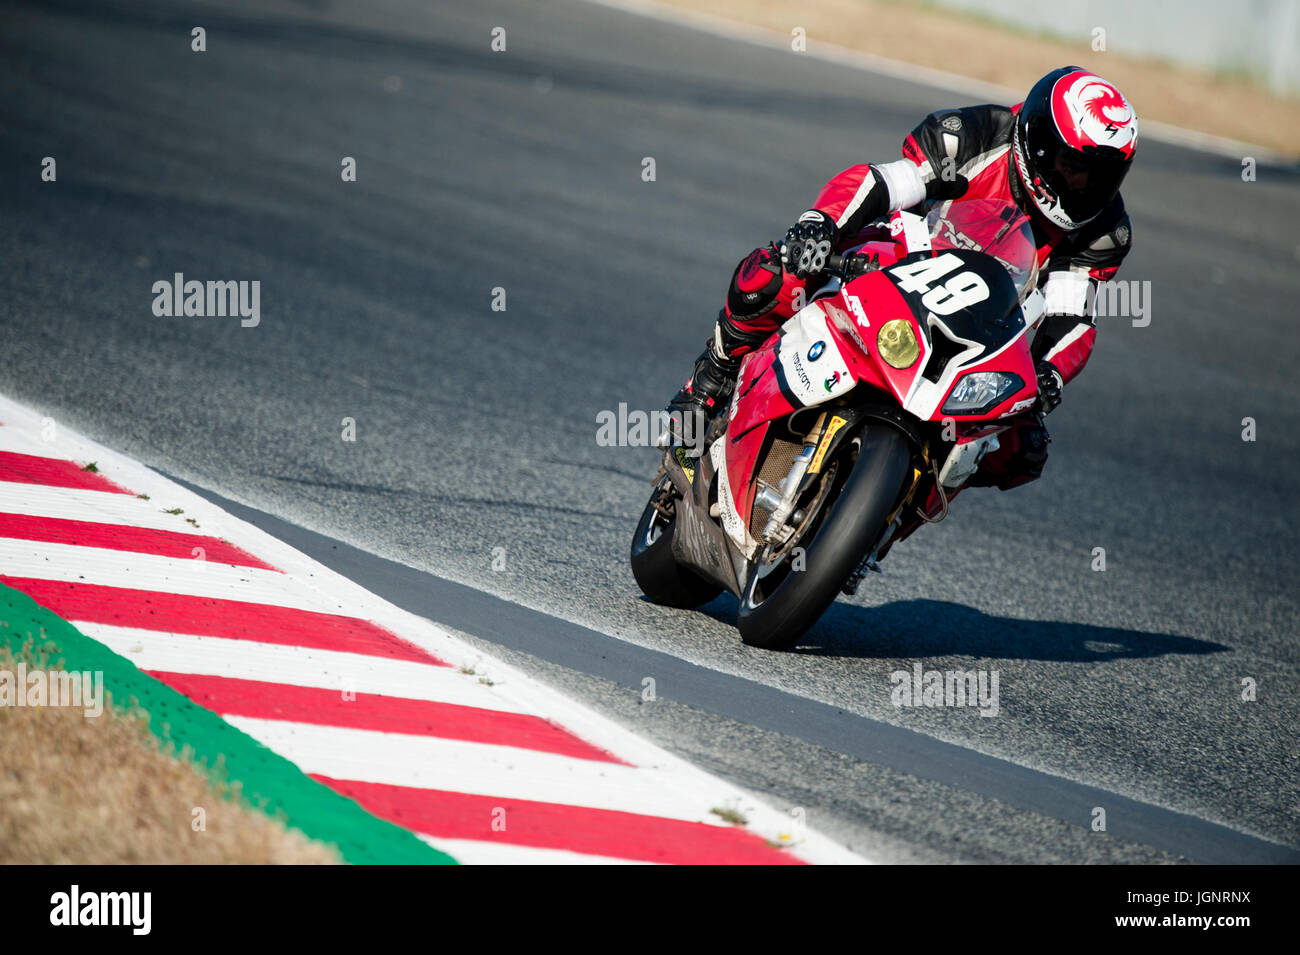 Barcelona, Spain. 9th July, 2017. Jordi Montero of the Motocrom Team in action during the 24 Horas de Catalunya Stock Photo